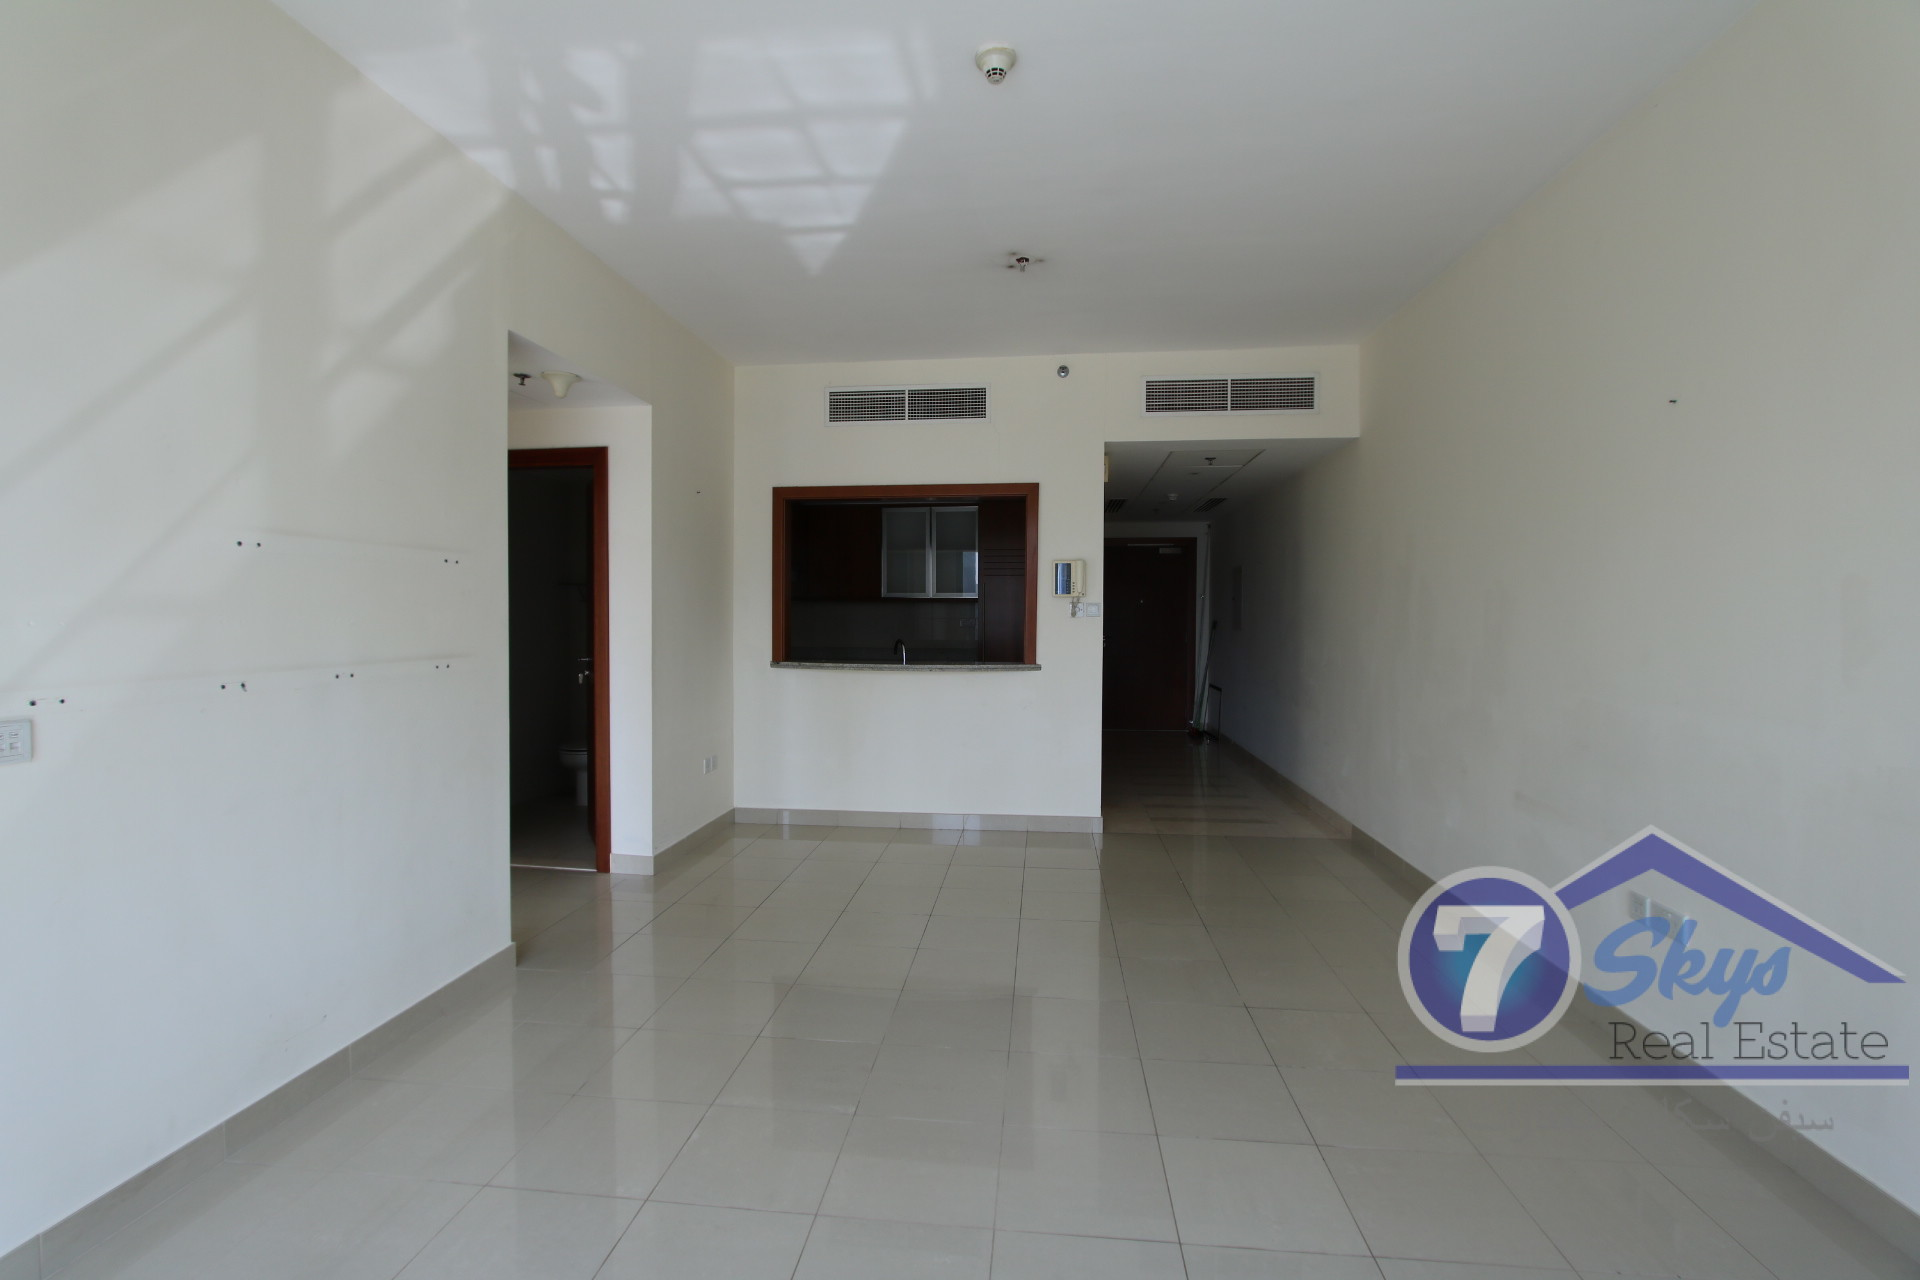 1br-unfurnished-available-i-stand-point